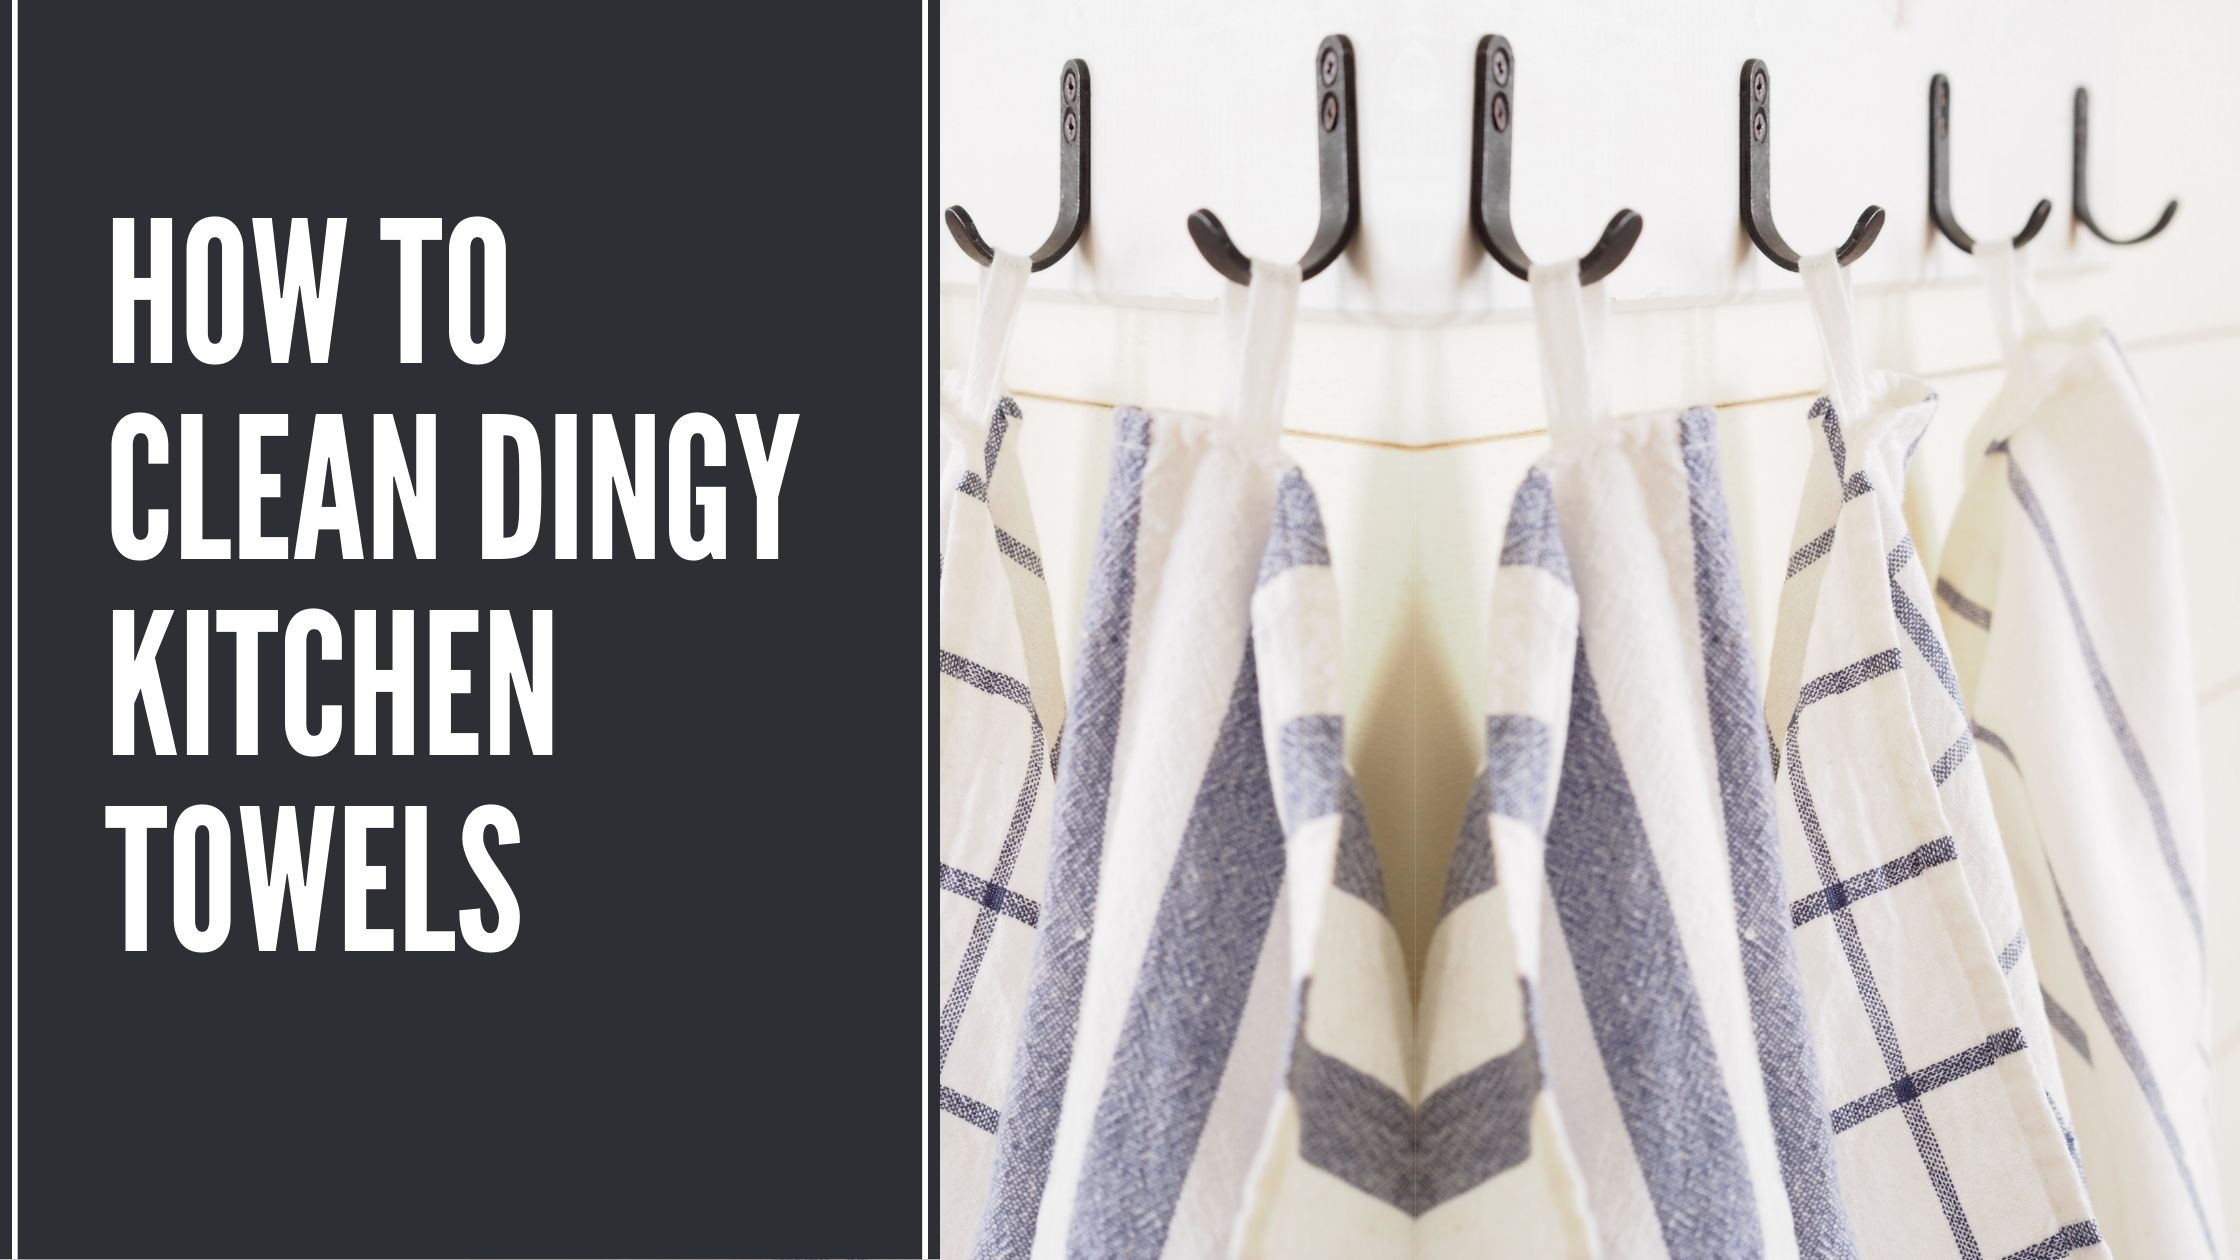 How to Clean Dingy Kitchen Towels